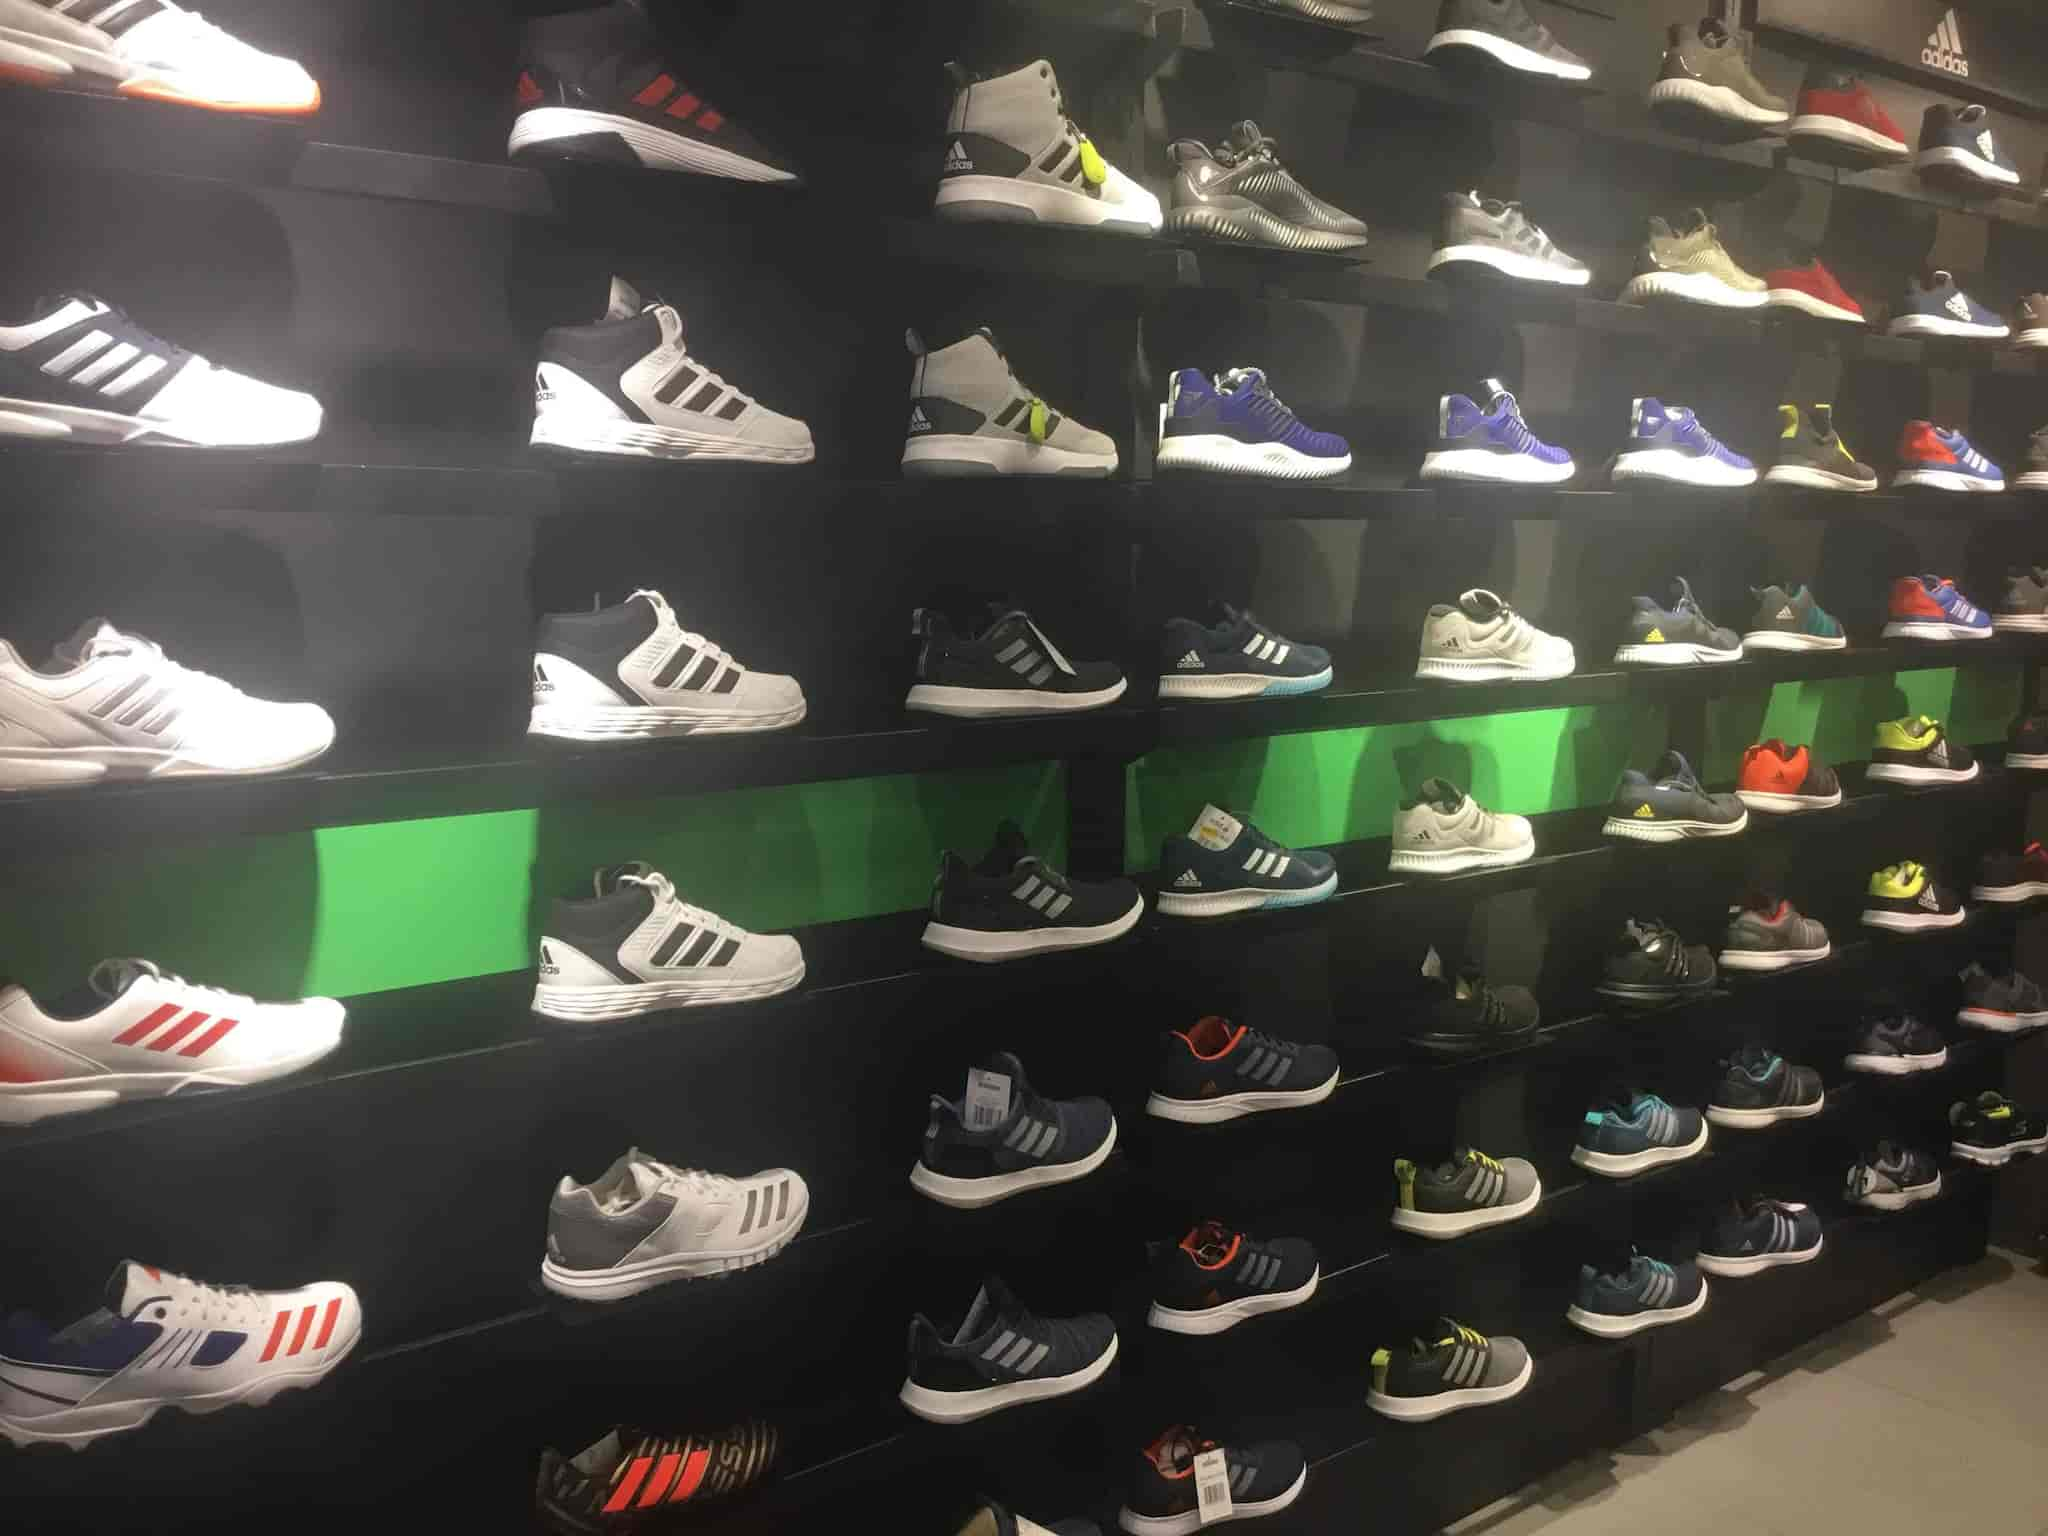 Adidas Exclusive Store, Vaishali Nagar - Sports Goods Dealers in Jaipur -  Justdial